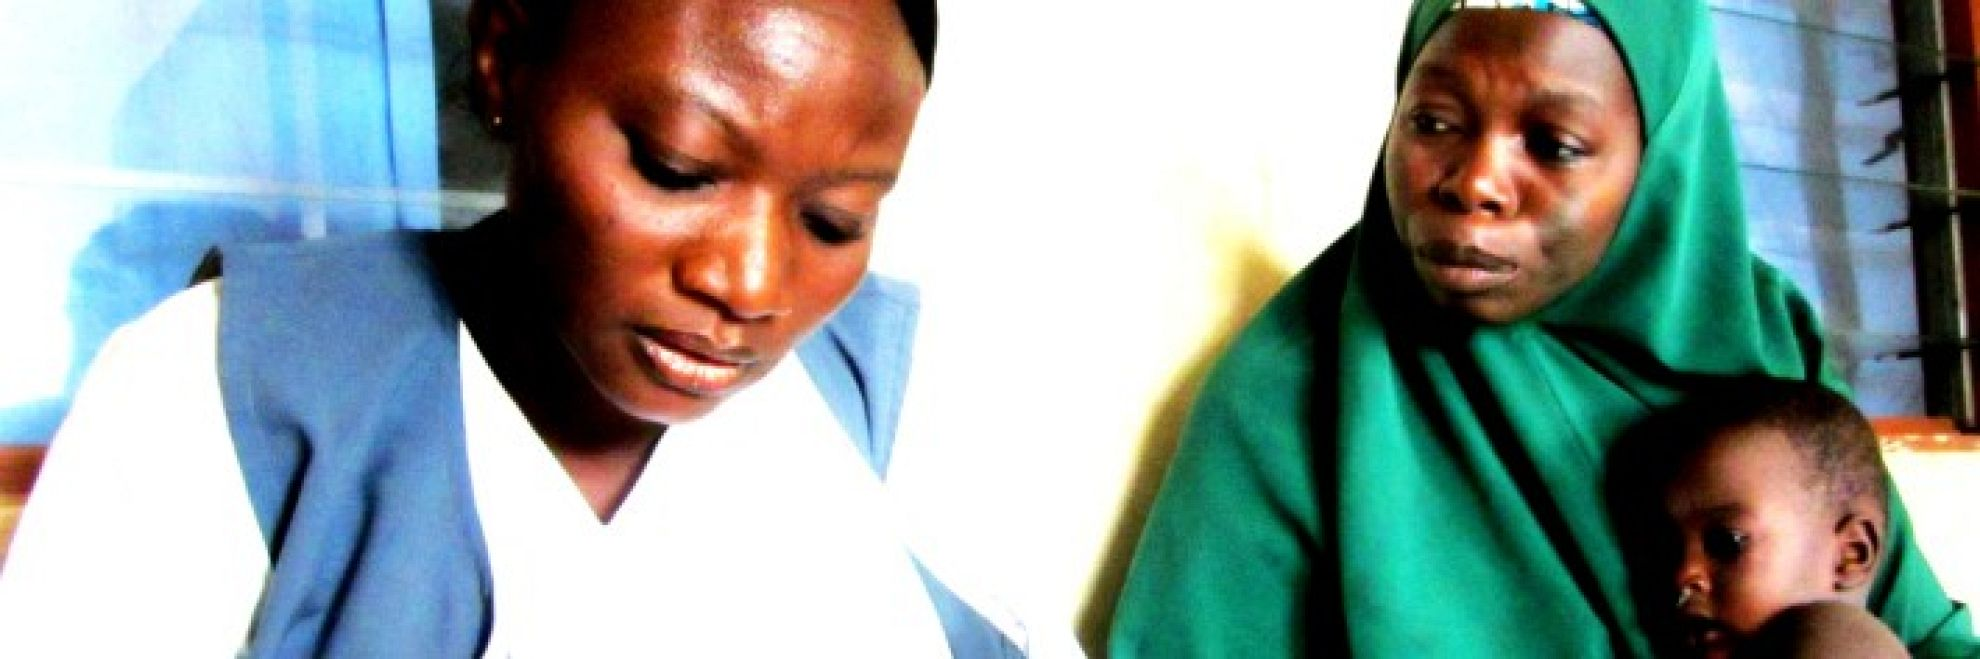 Latest News Improving the quality of malaria care